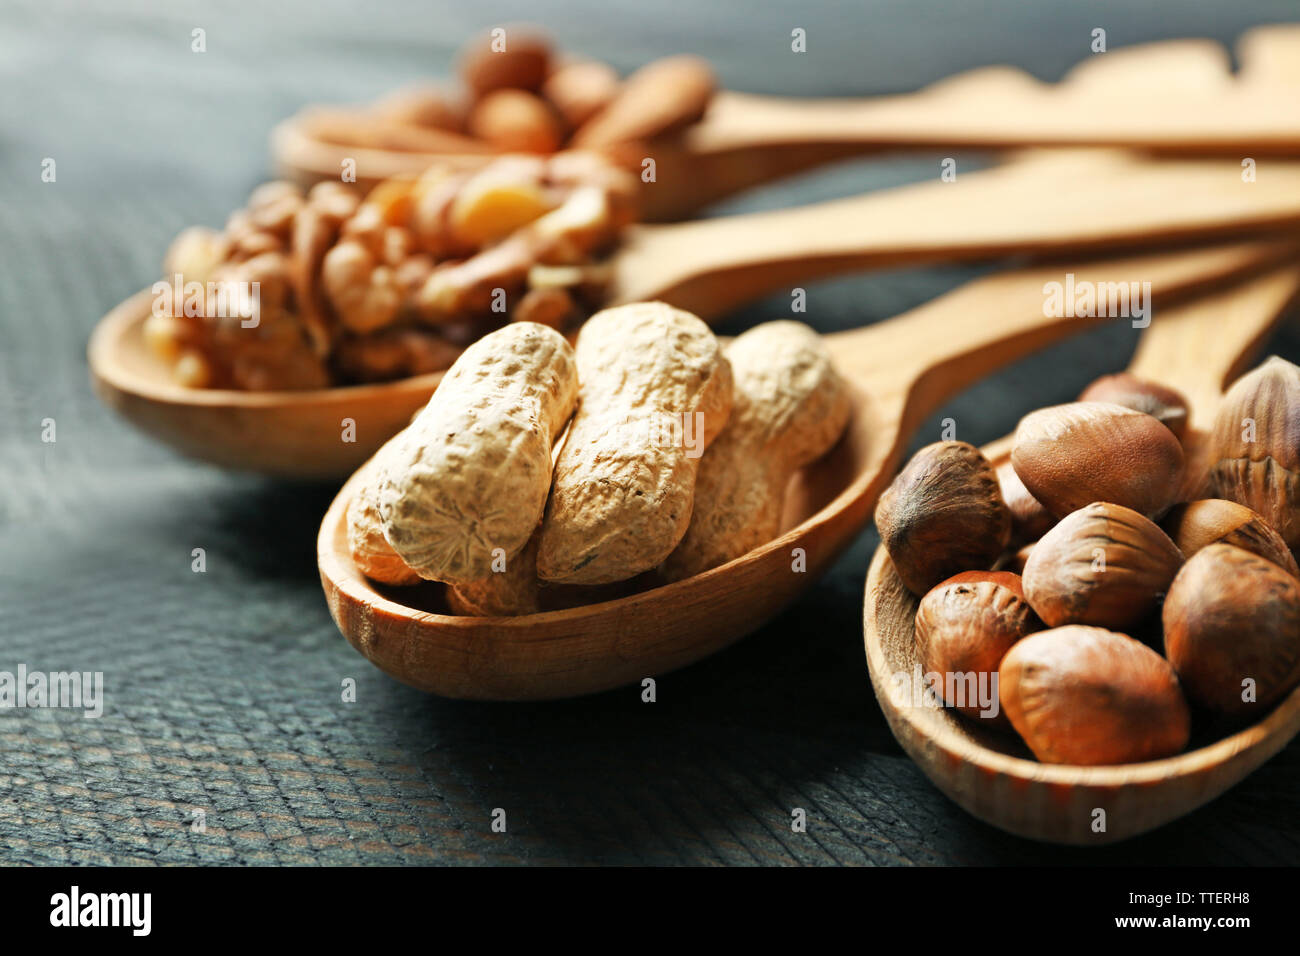 Spoons with walnuts, pistachios, almonds, acorns and peanuts, on grey wooden background Stock Photo